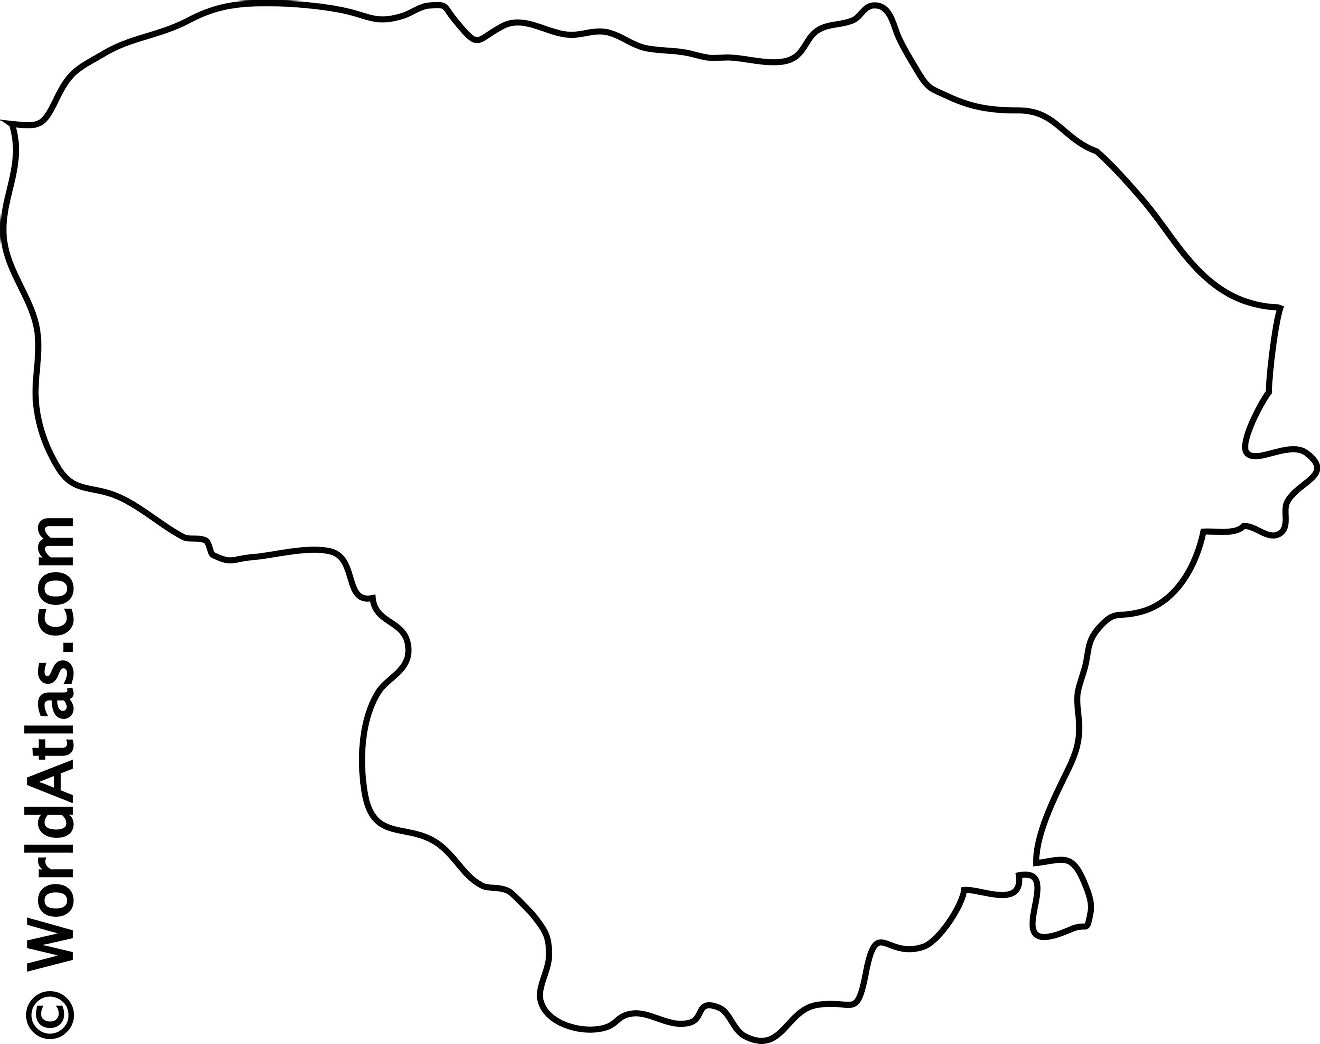 Blank Outline Map of Lithuania